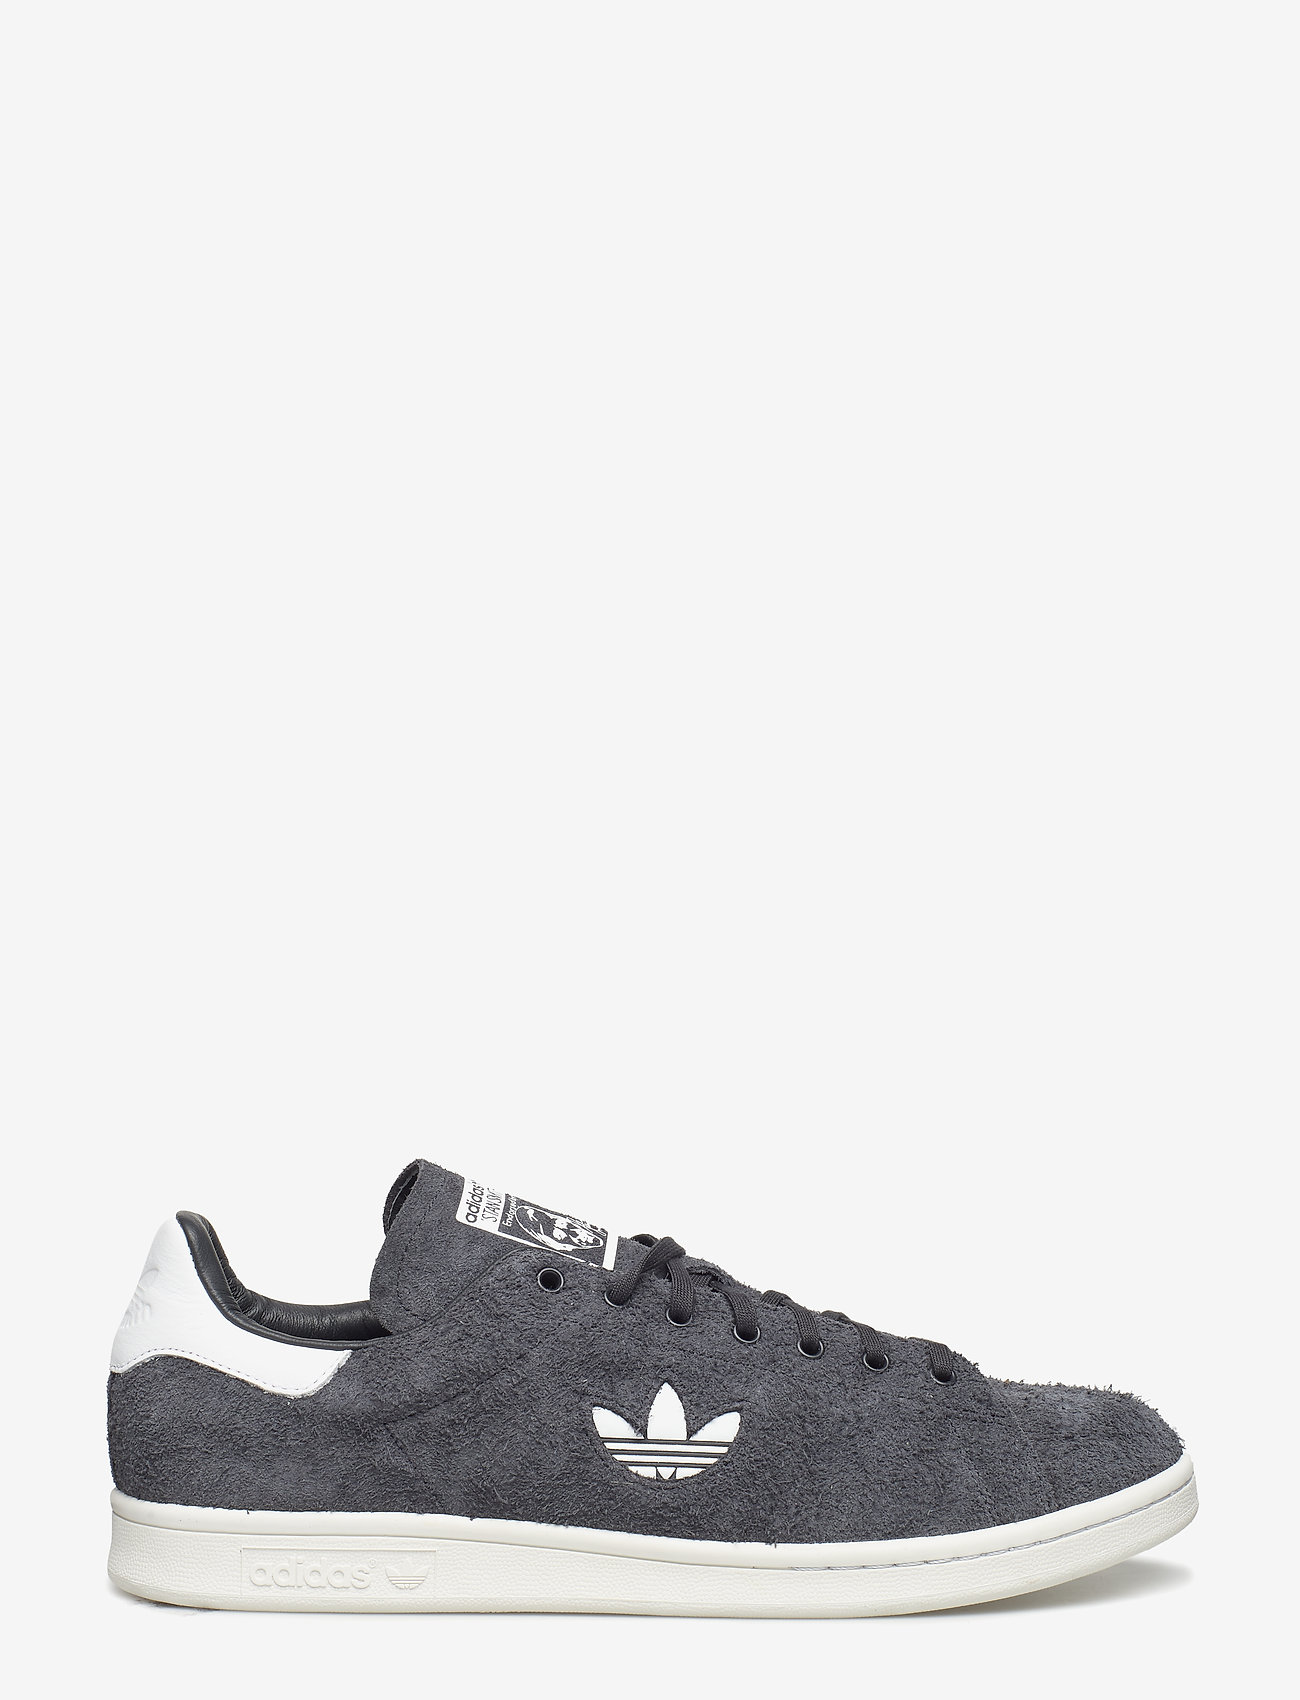 adidas Originals - Stan Smith - low tops - carbon/ftwwht/crywht